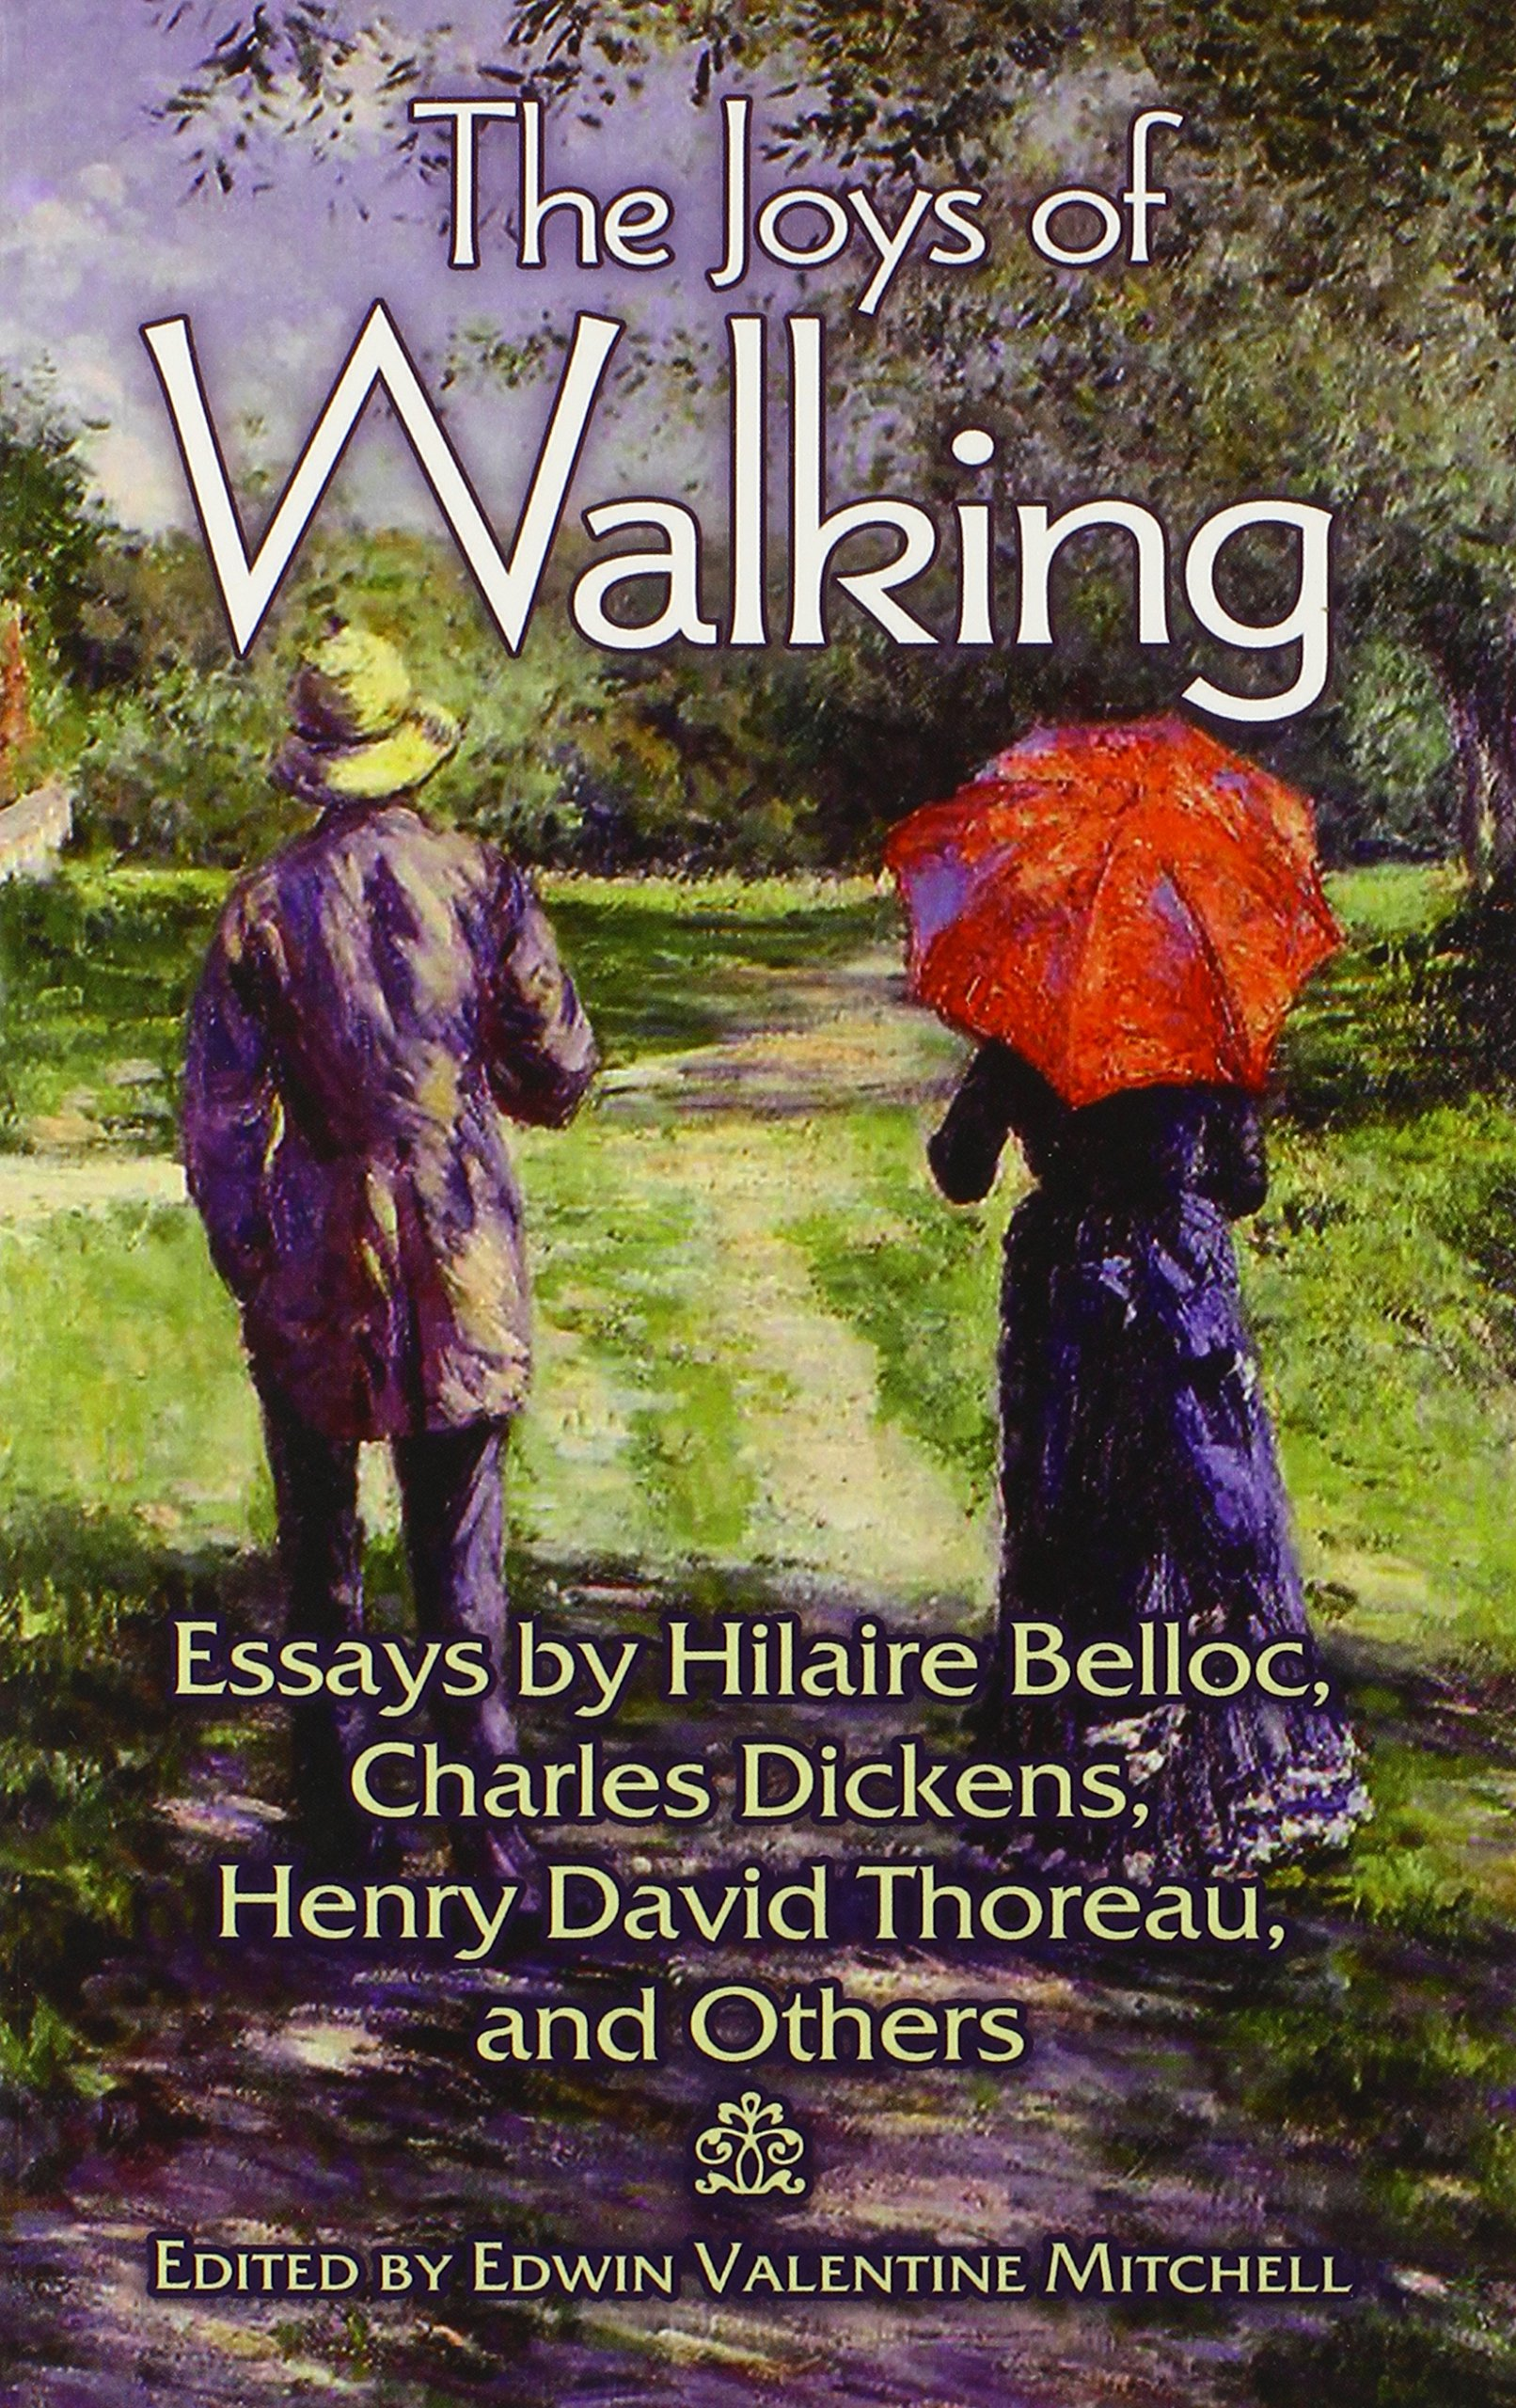 the joys of walking essays by hilaire belloc charles dickens the joys of walking essays by hilaire belloc charles dickens henry david thoreau and others edwin valentine mitchell 0800759479498 com books